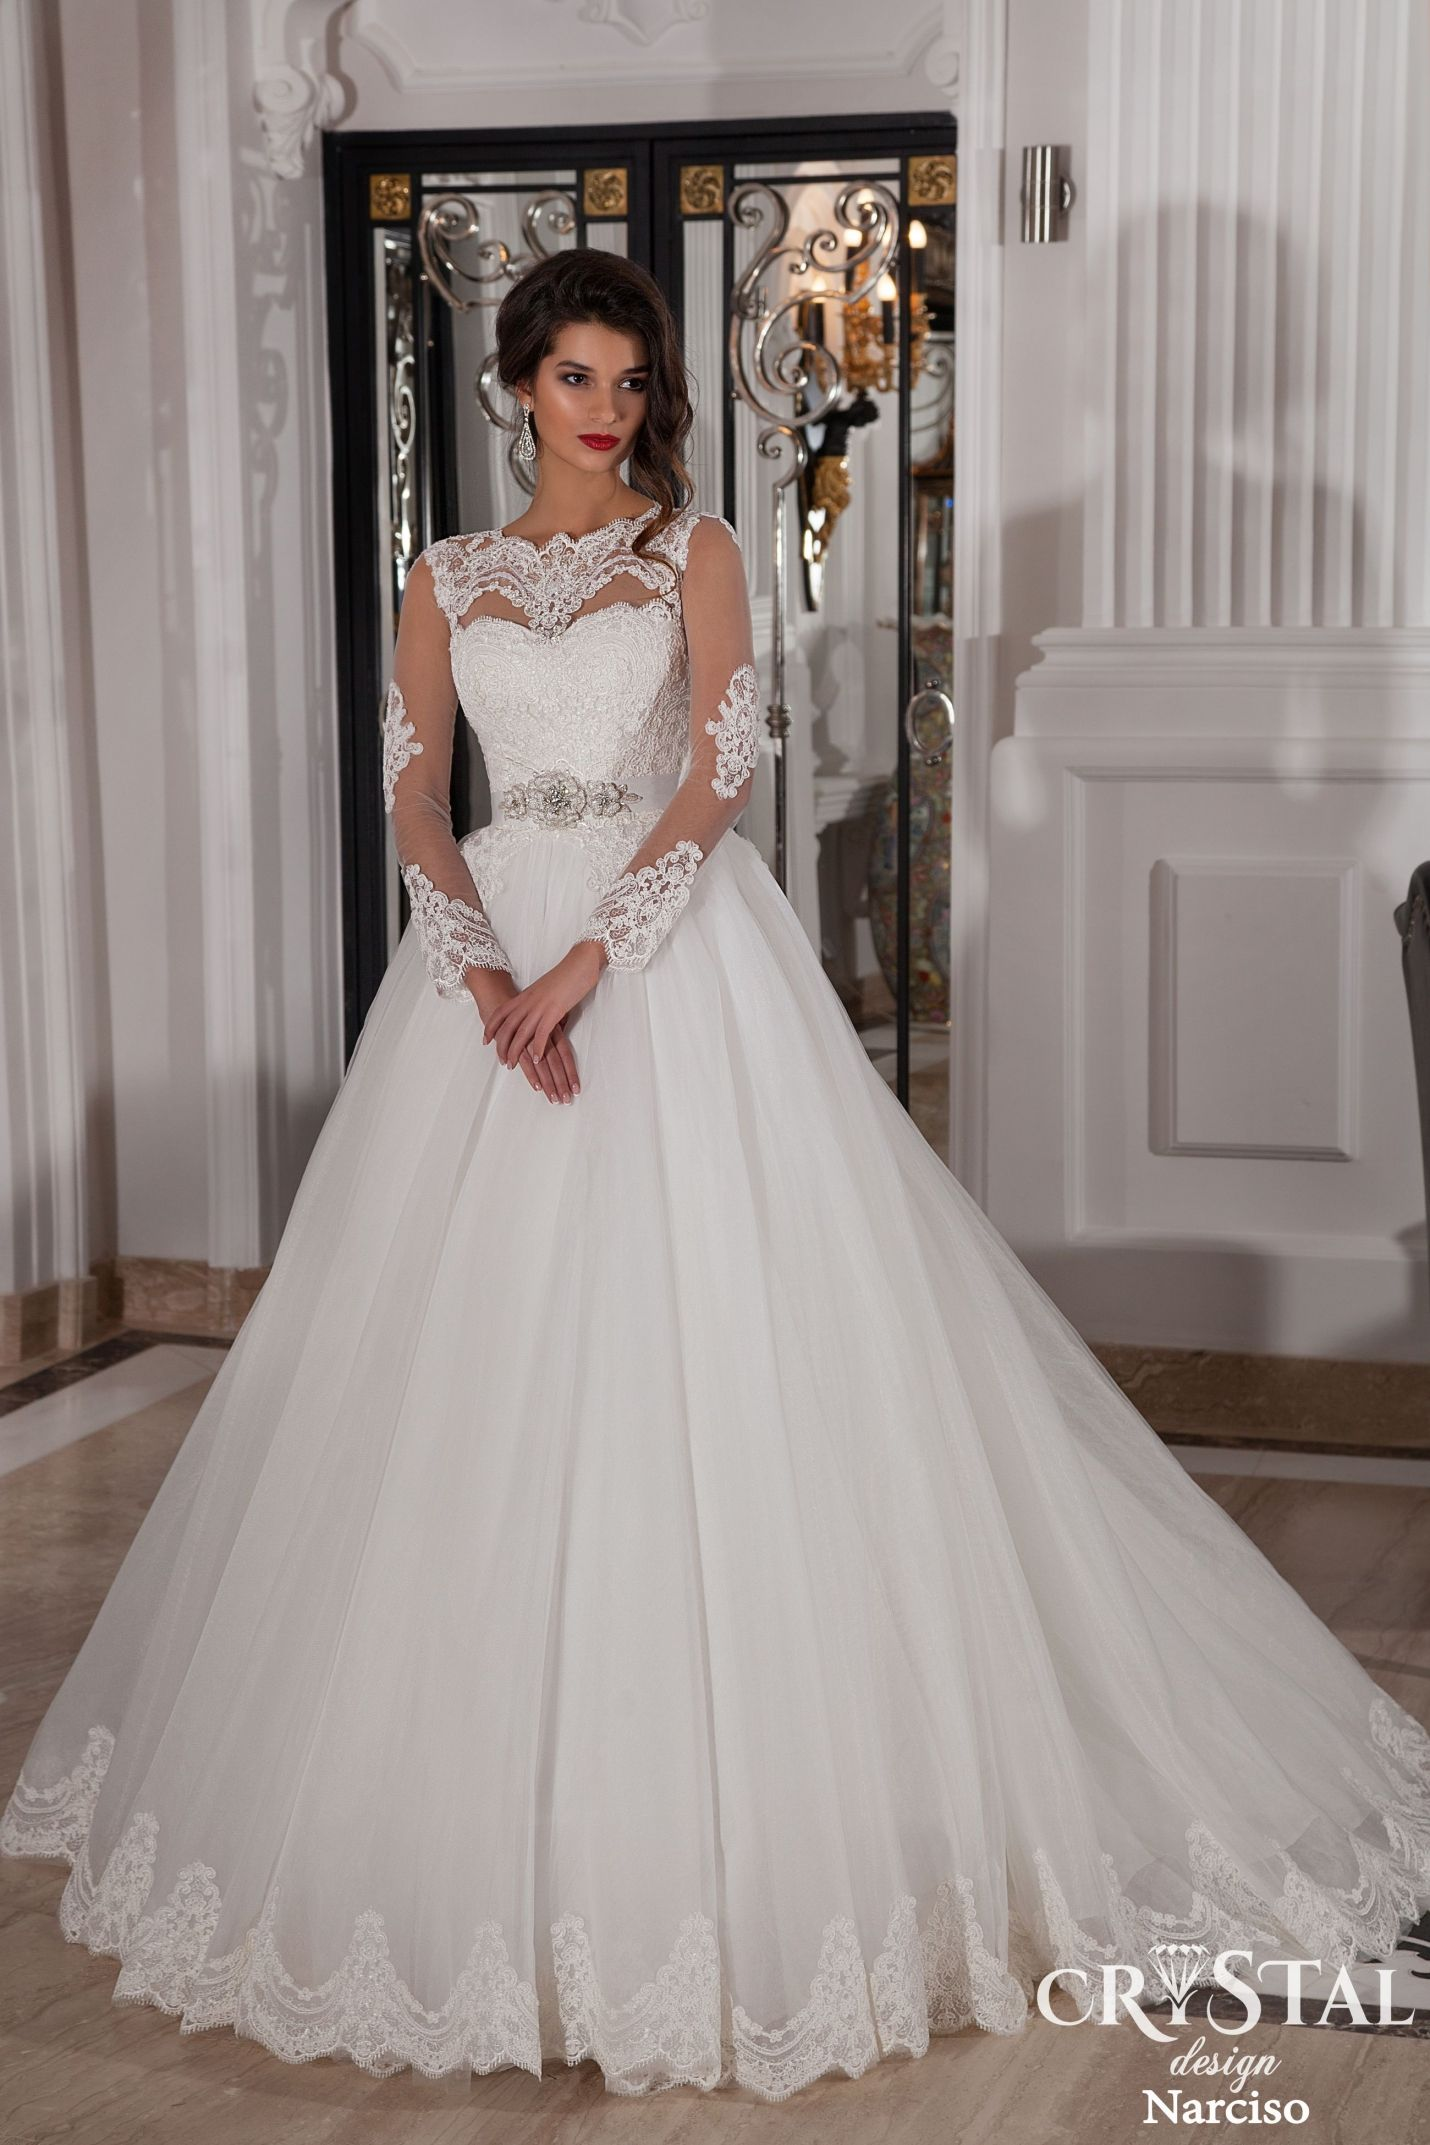 Crystal Design Wedding Collection 2015 Part 2 | Wedding Dress 2017 ...